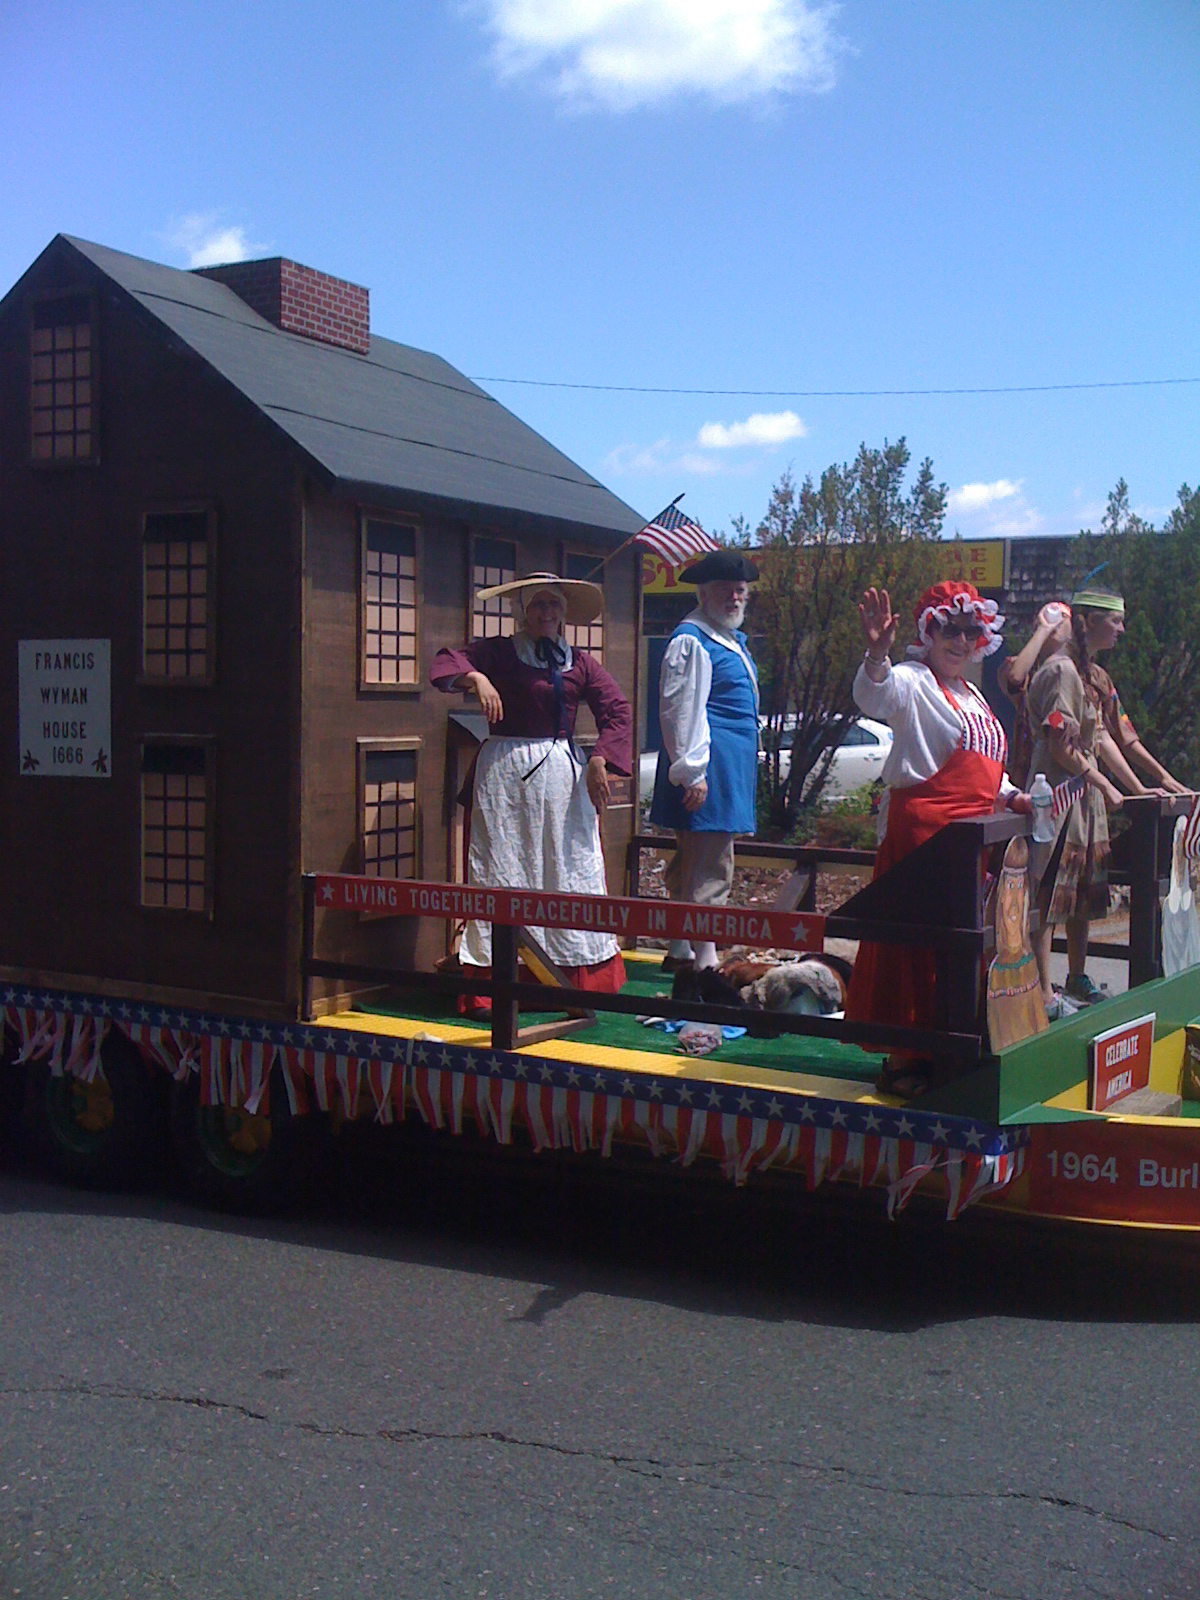 Our house was the anchor float of the parade